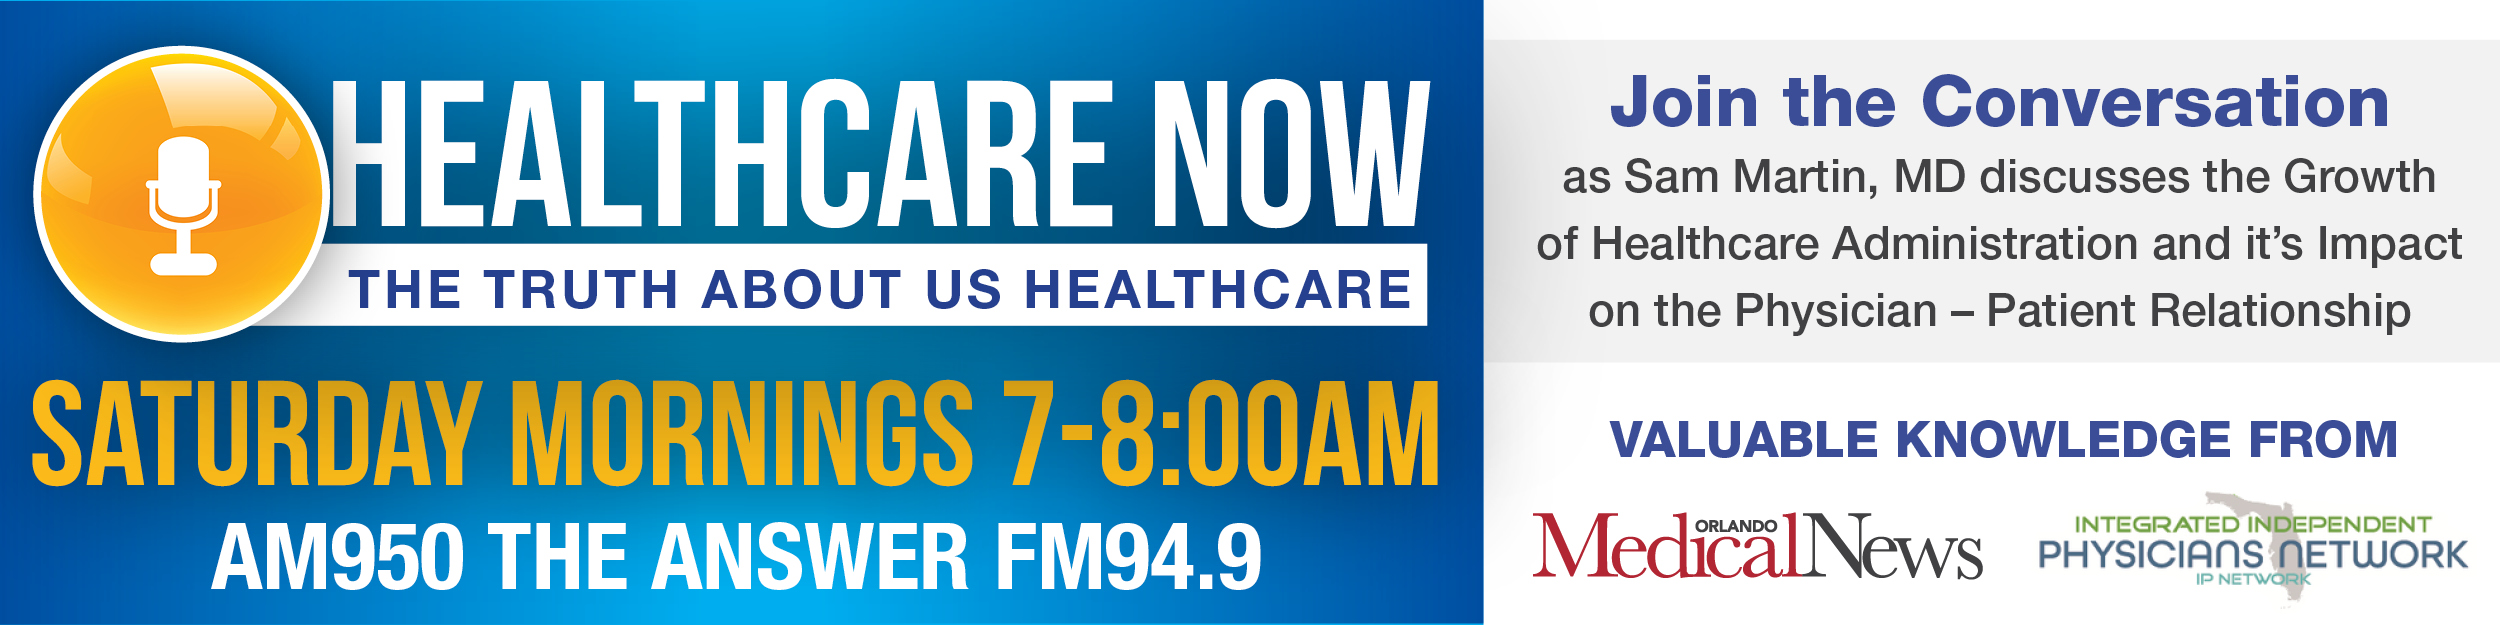 Healthcare Now Radio Show